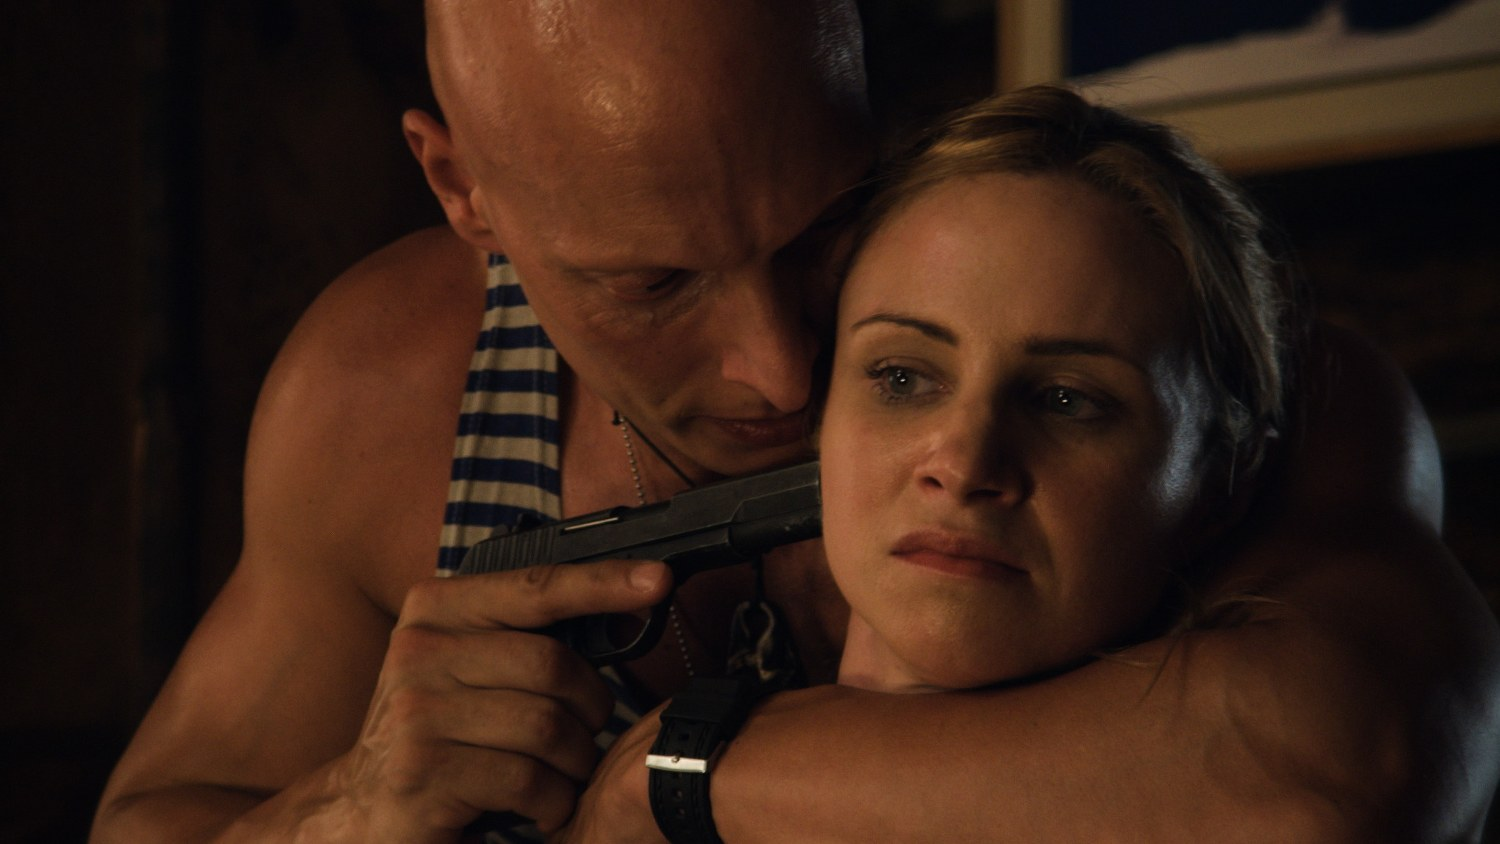 Joseph Gatt and Michelle Taylor – 3 Hours Until Dead